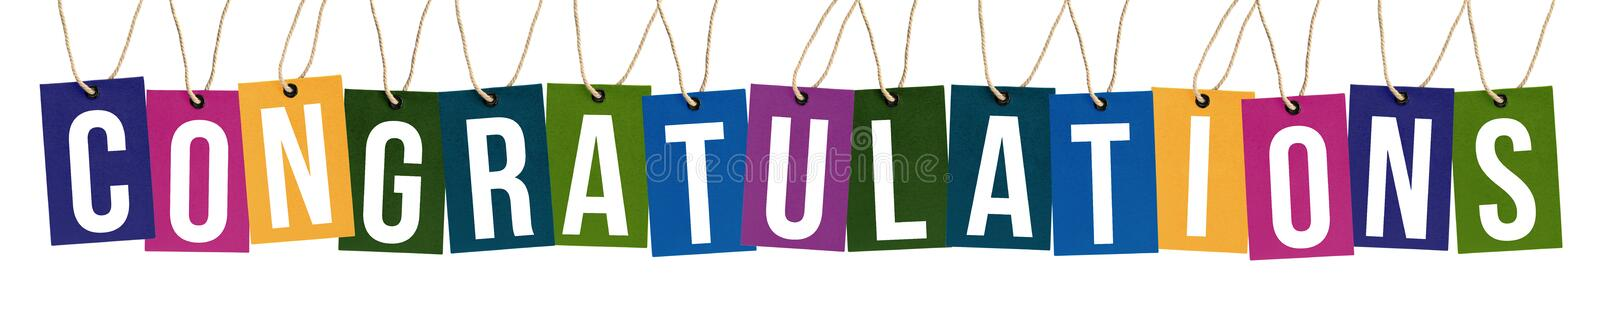 Congratulations text on multi color tags royalty free stock photos